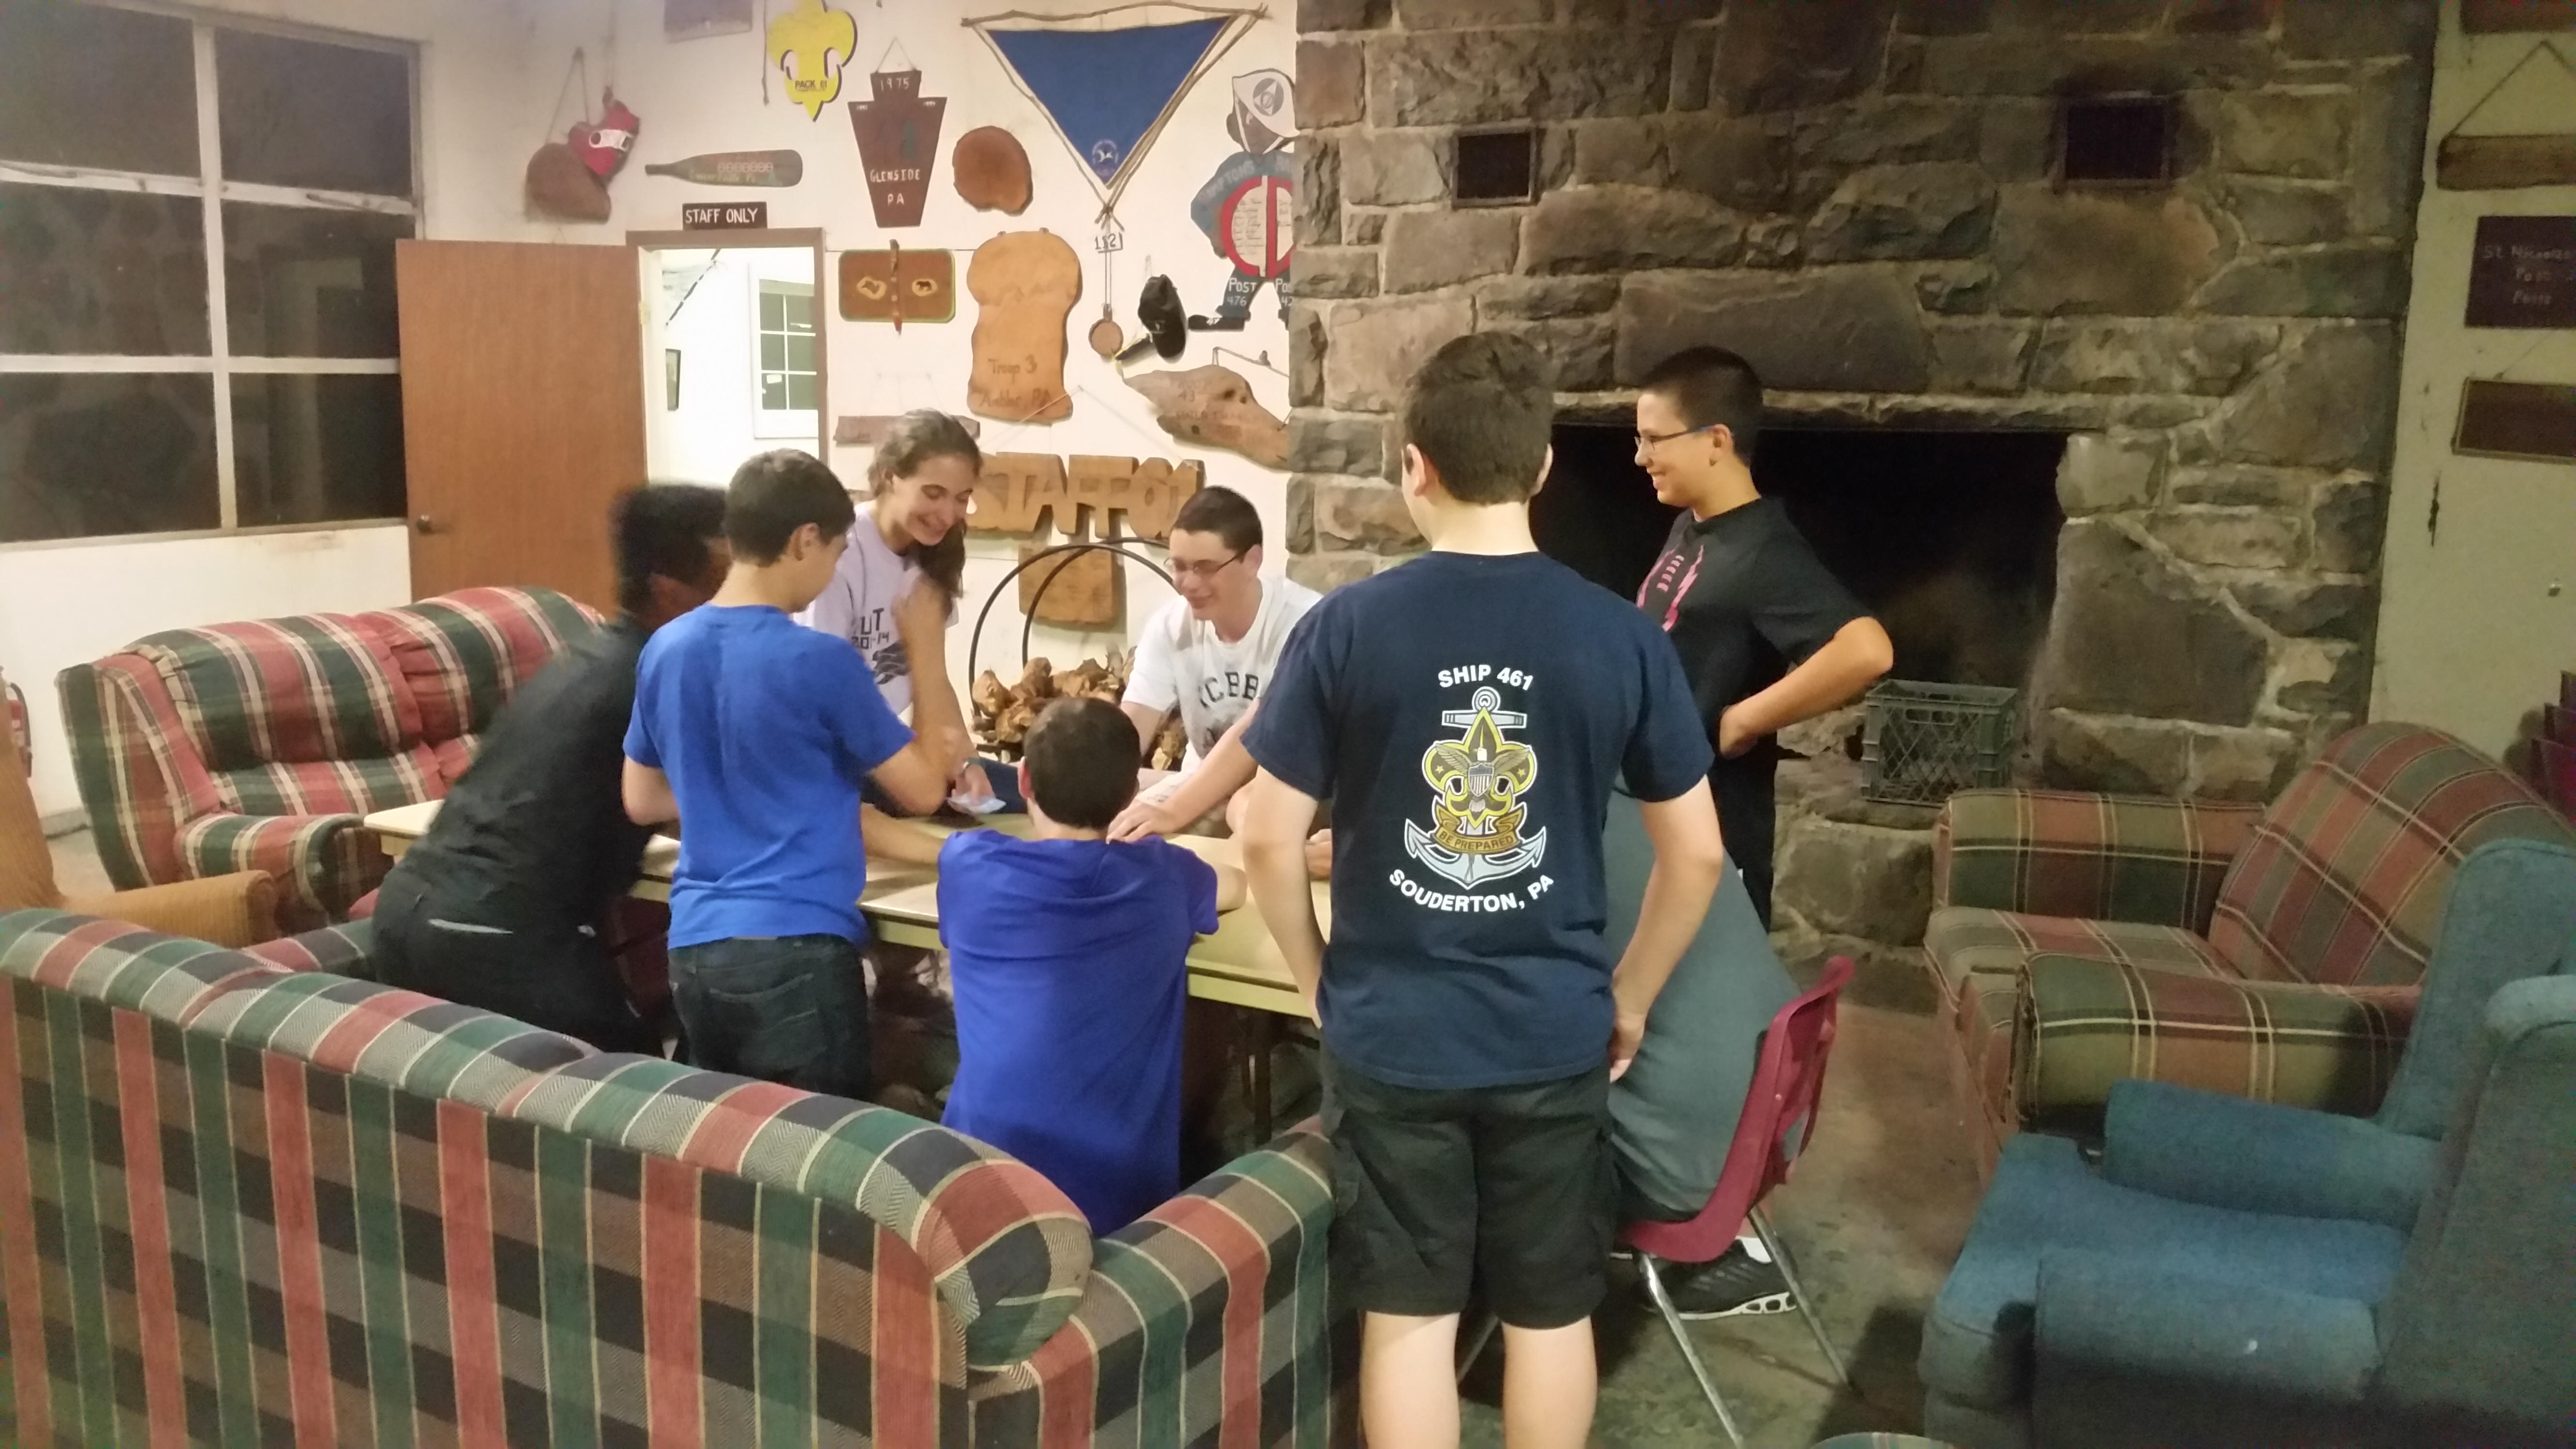 Sea Scouts enjoying an evening of fellowship at Firestone Lodge